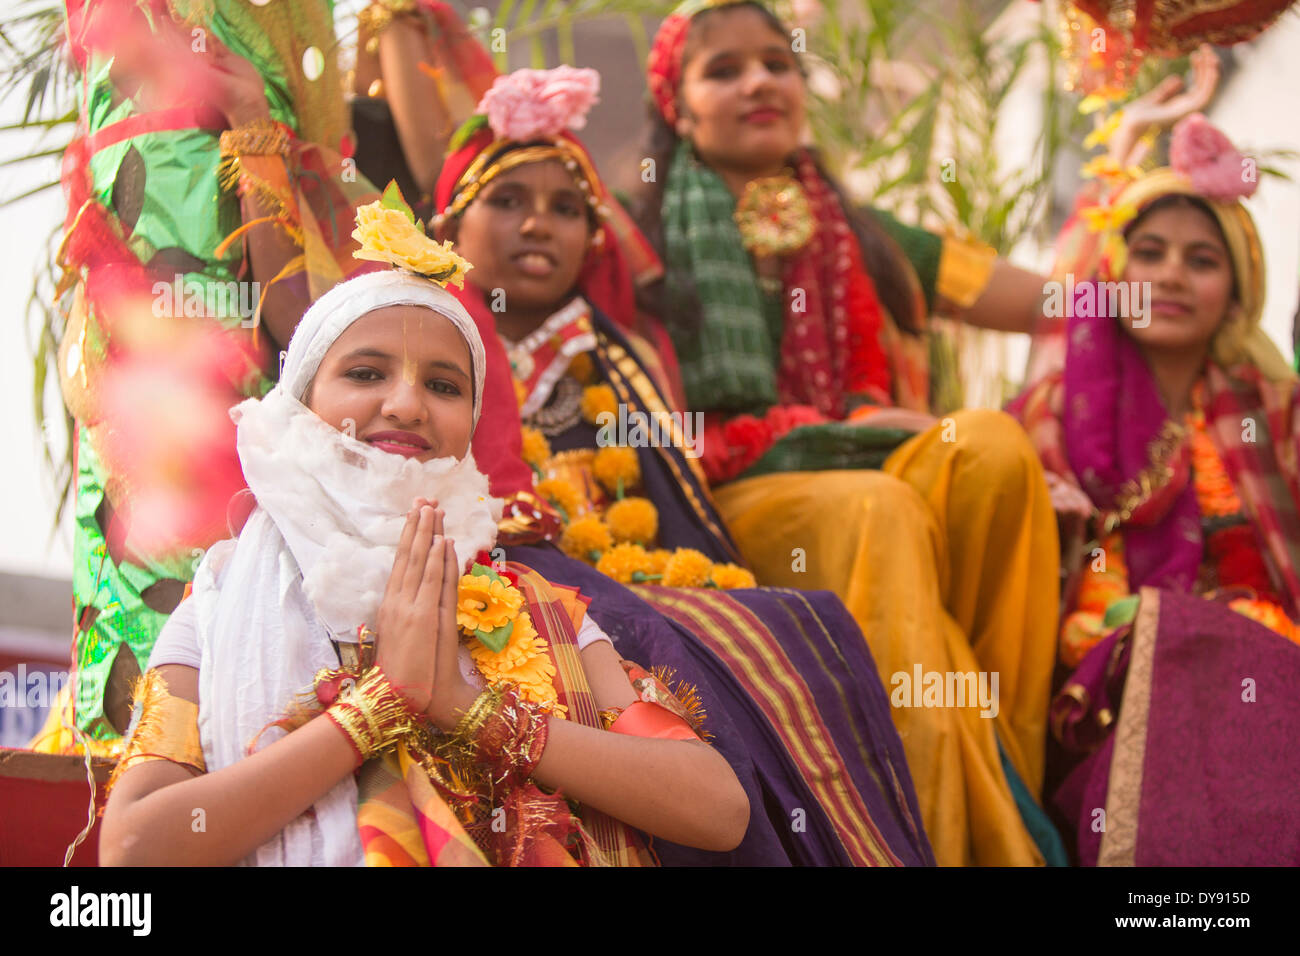 Les gens, Delhi, en Asie, la ville, les gens, traditionnelle, Photo Stock